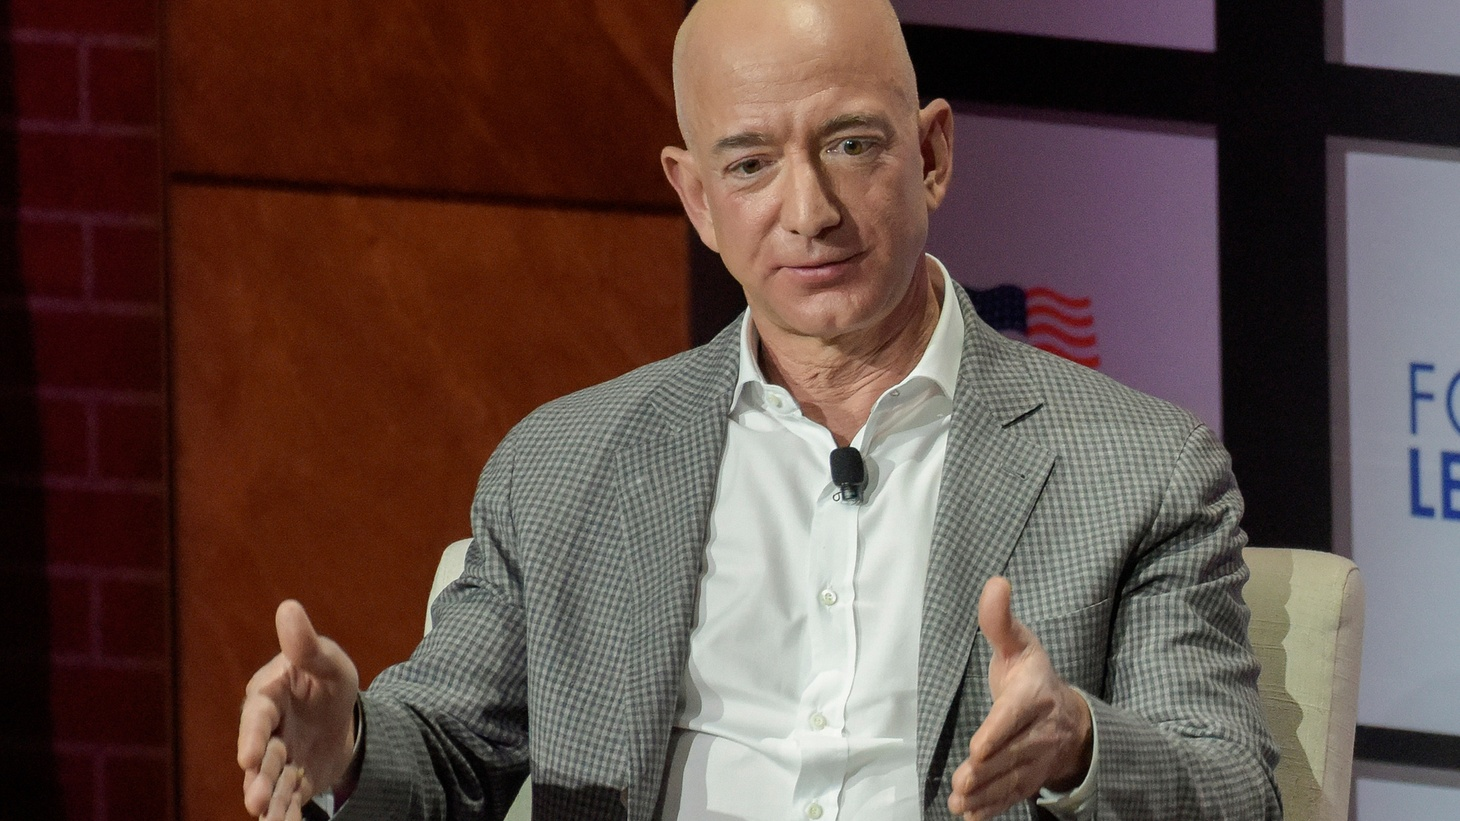 Jeff Bezos, Chairman and CEO of Amazon, speaks at the George W. Bush Presidential Center's Forum on Leadership in Dallas, Texas, U.S., April 20, 2018. Picture taken on April 20, 2018